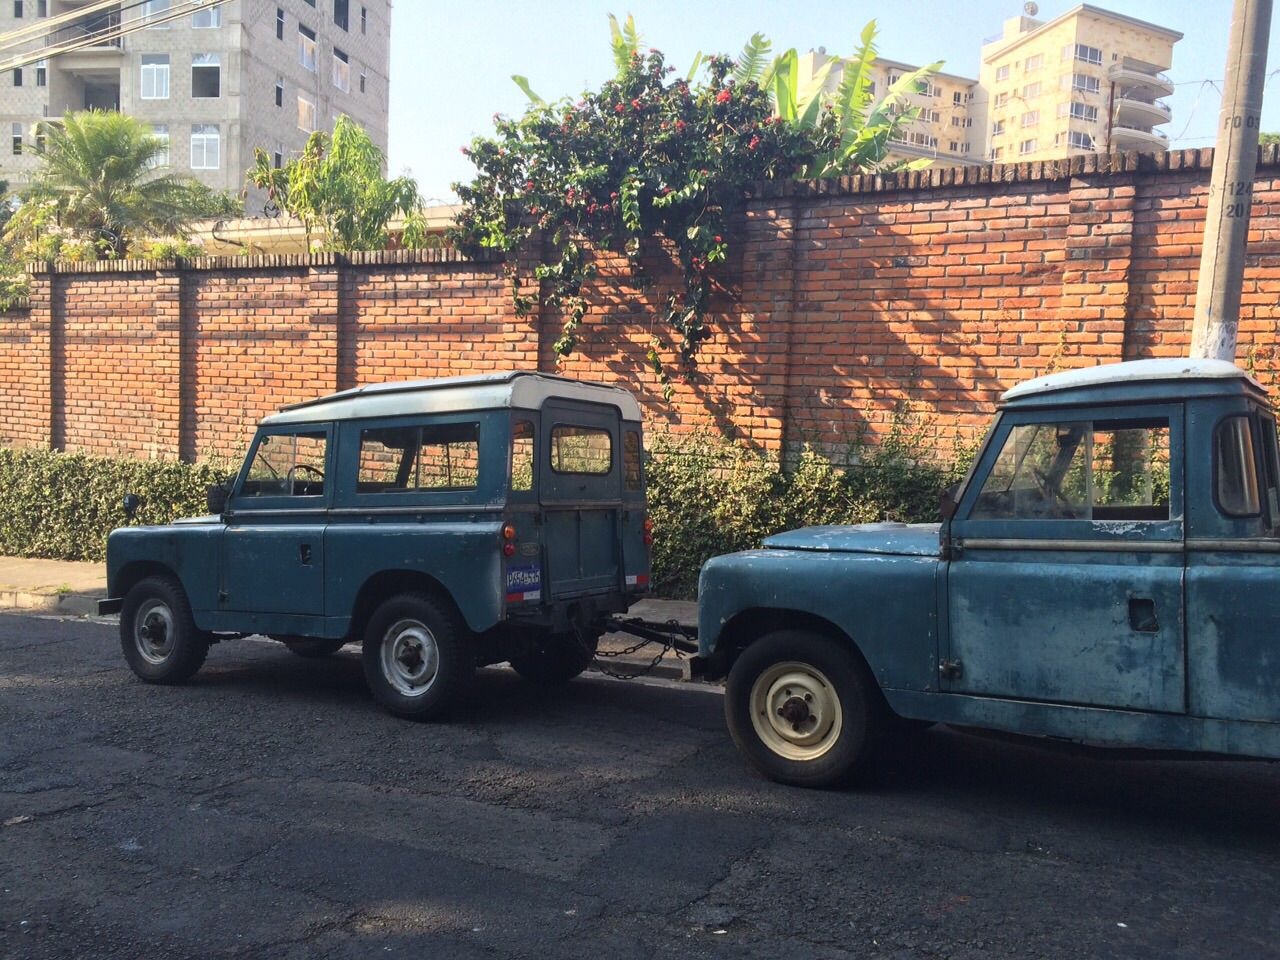 Land Rover Series Iia Towing Series Ii El Salvador Land Rover Series Land Rover Van